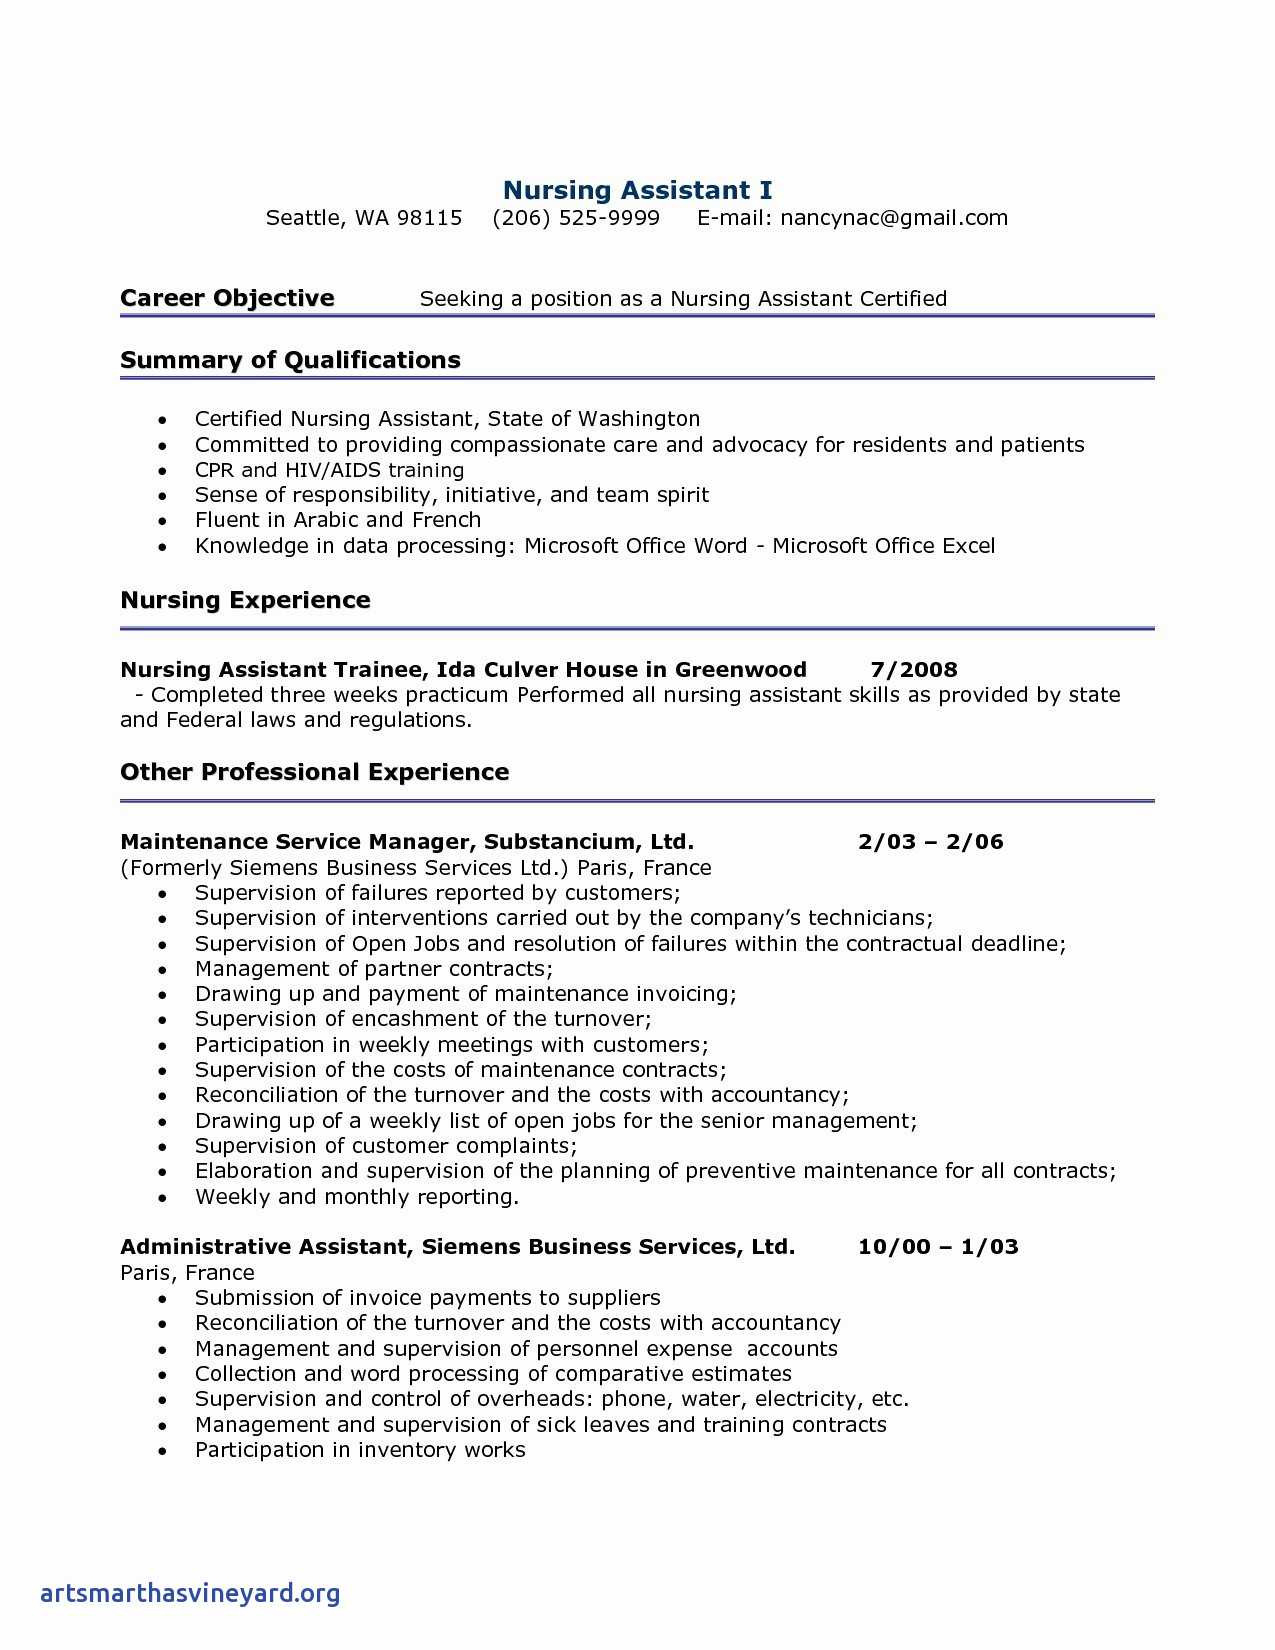 Wordperfect Resume Template - Free Unique Resume Templates Word Perfect Lovely Pr Resume Template